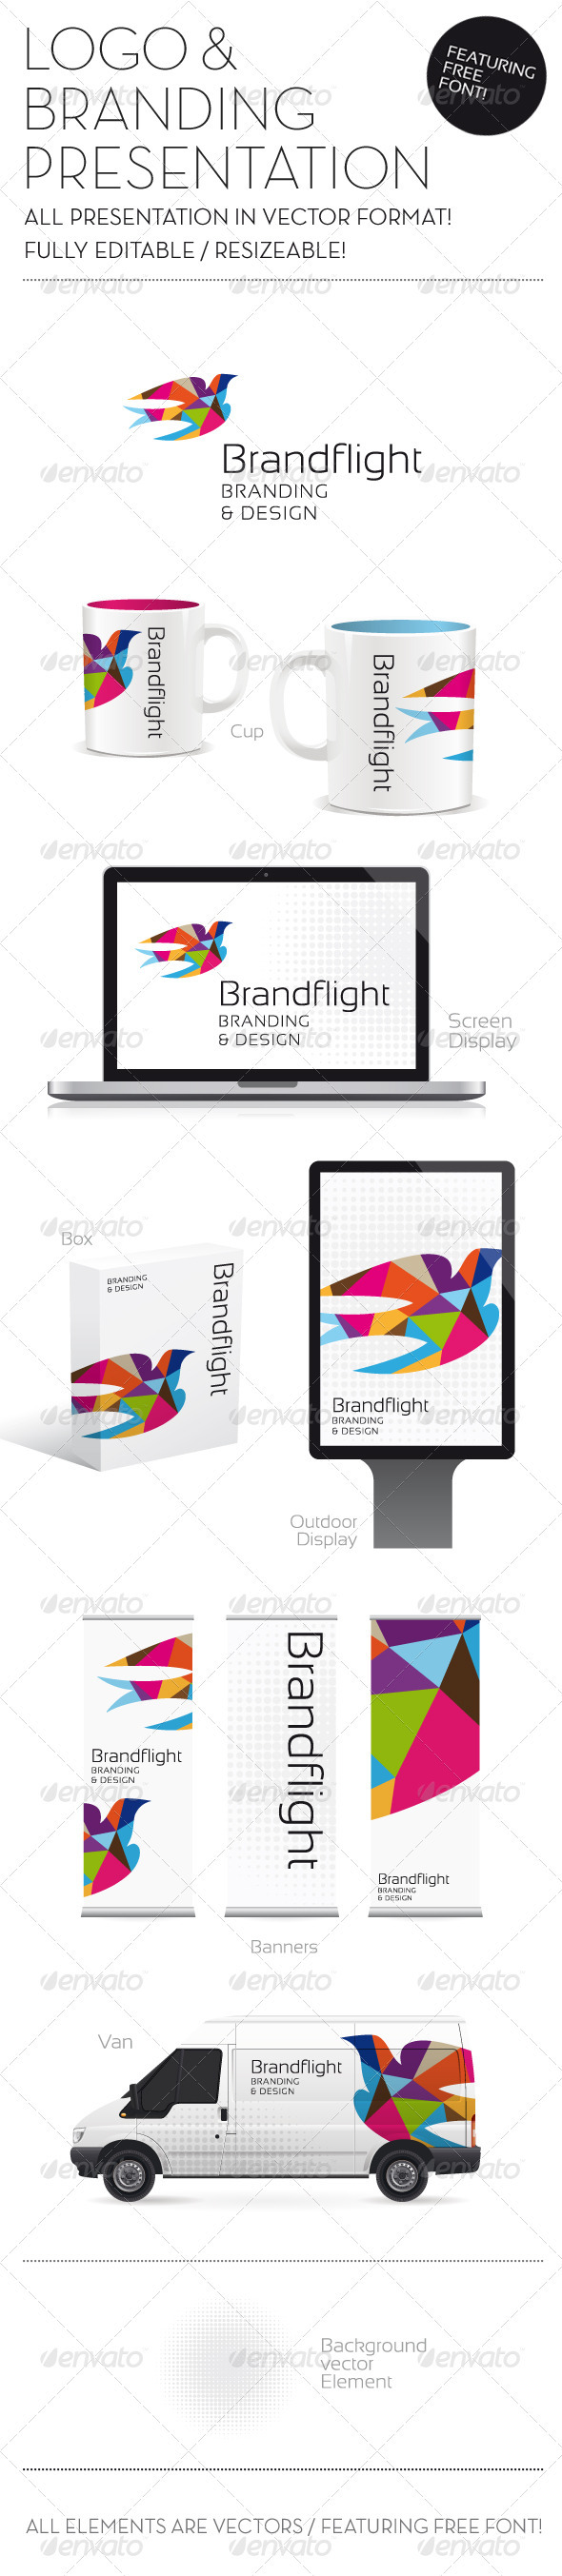 logo template & branding presentation including banners, screen, Powerpoint templates